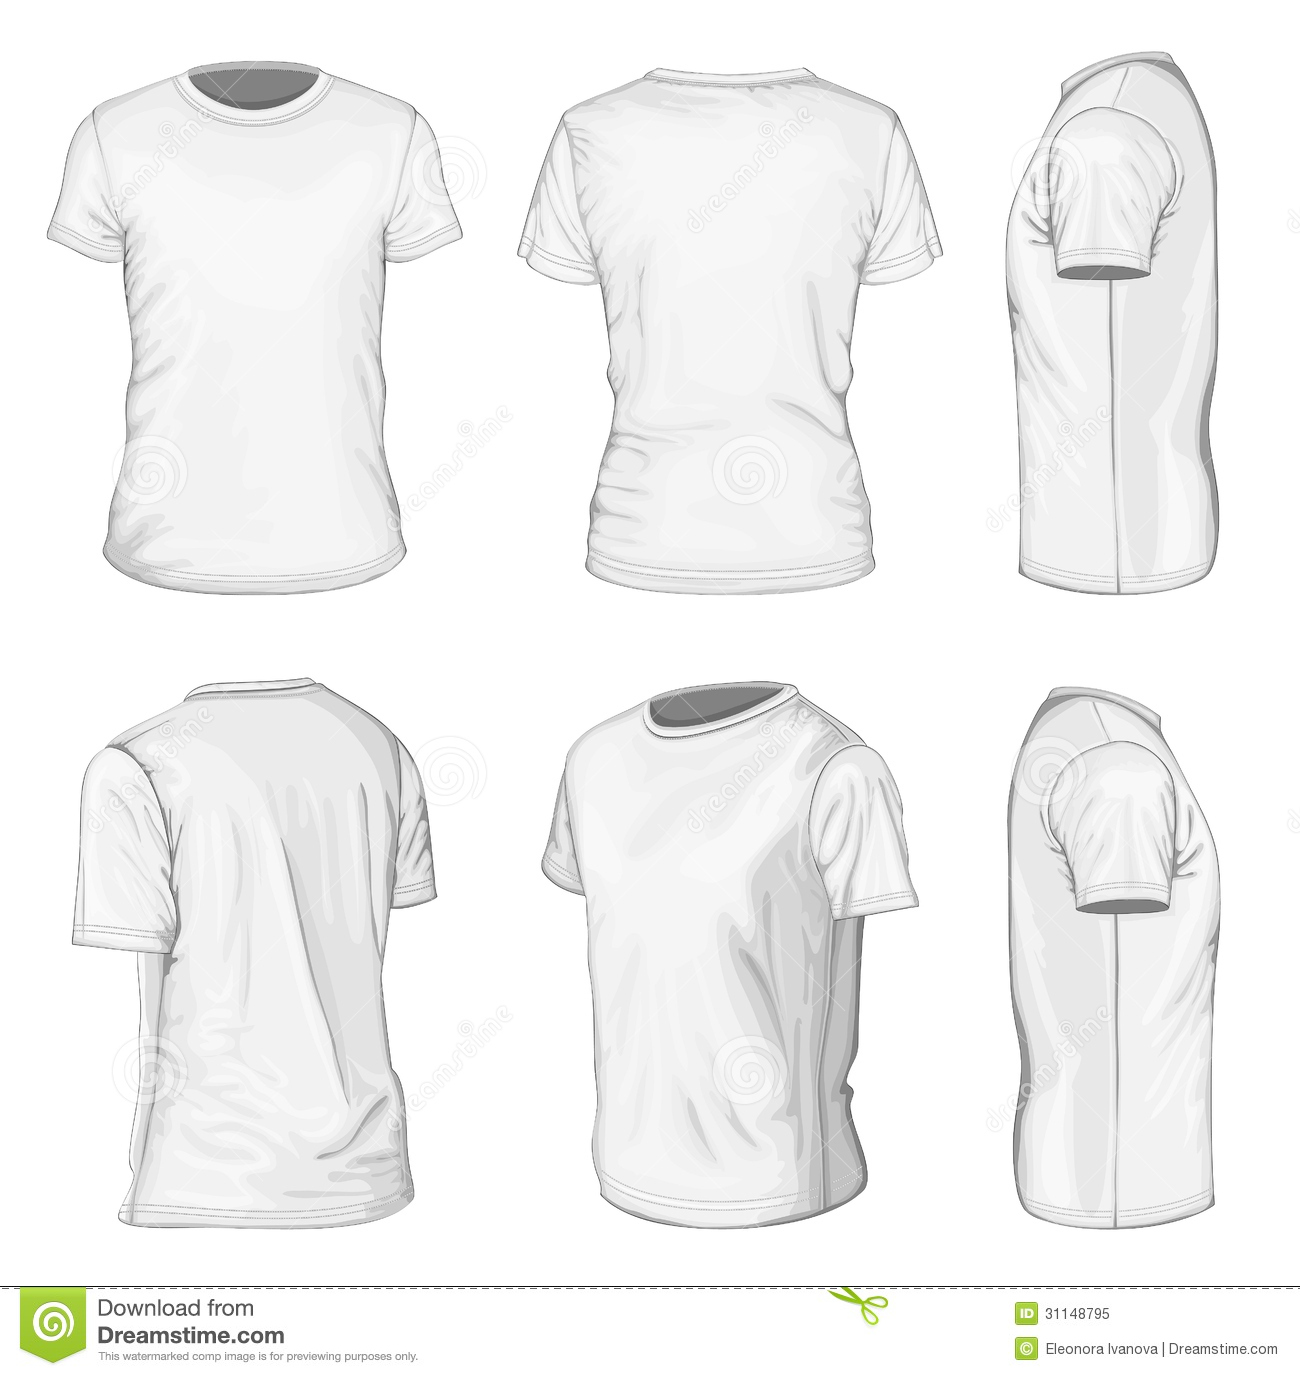 Men s White Short Sleeve T-shirt Design Templates Stock Vector ... f75d31f39